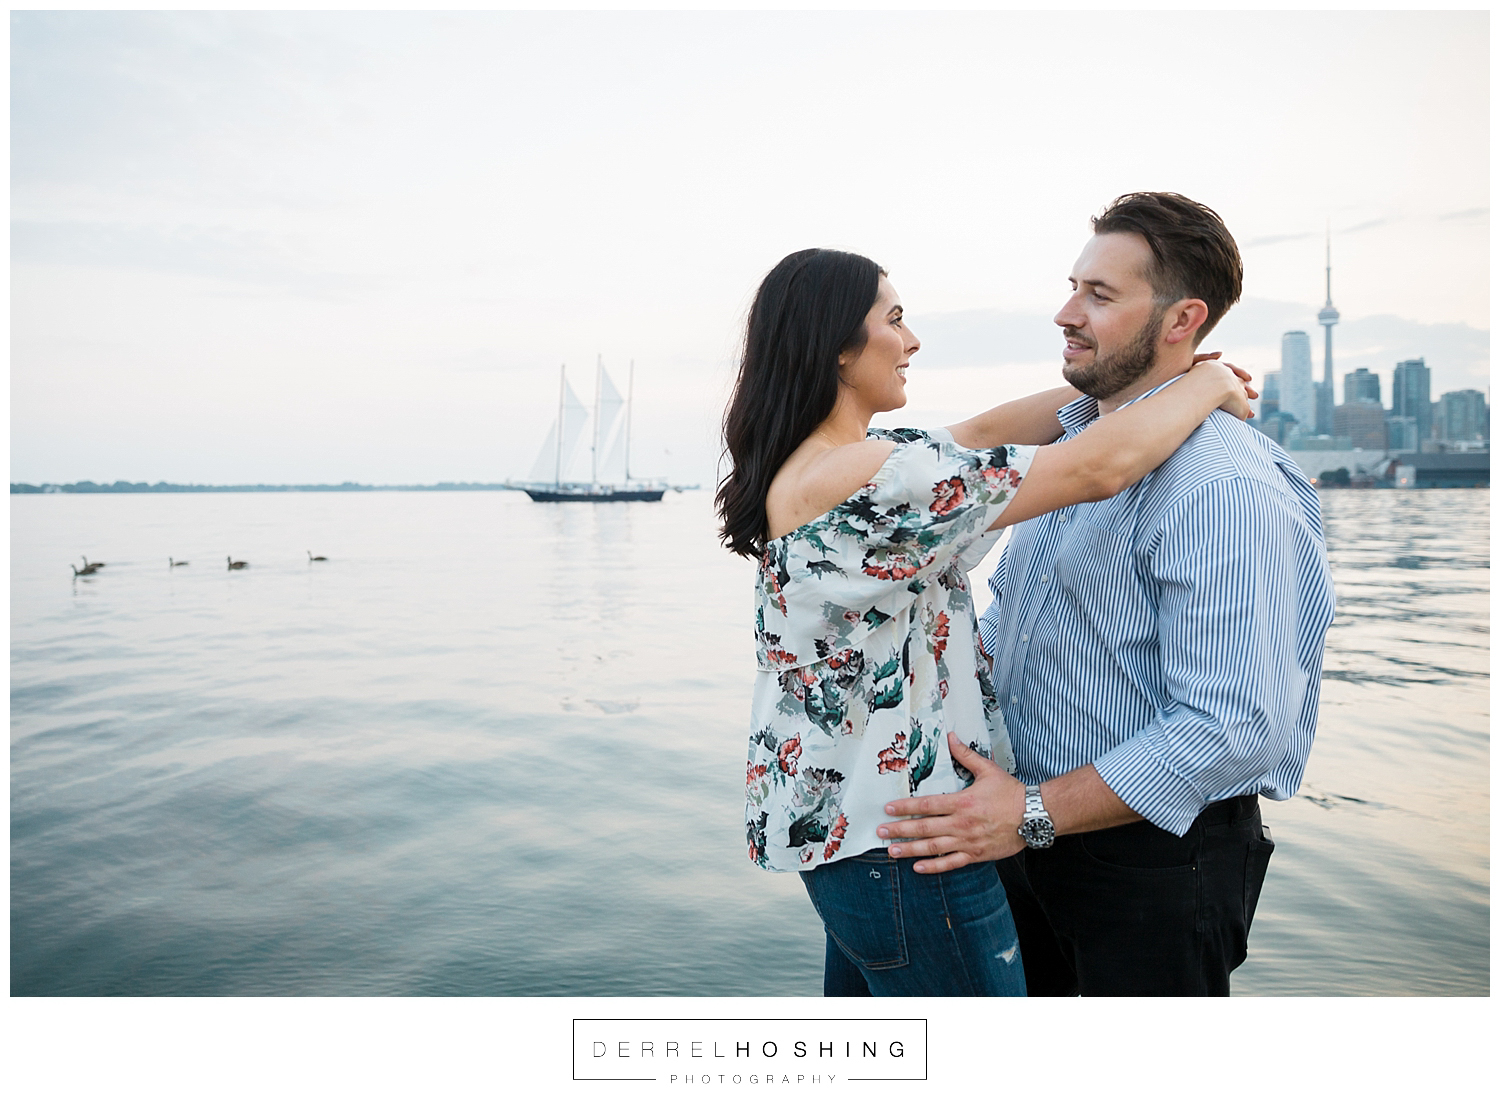 Distillery-District-Polson-Pier-Toronto-Engagement-Shoot-Wedding-Photographer-0015.jpg